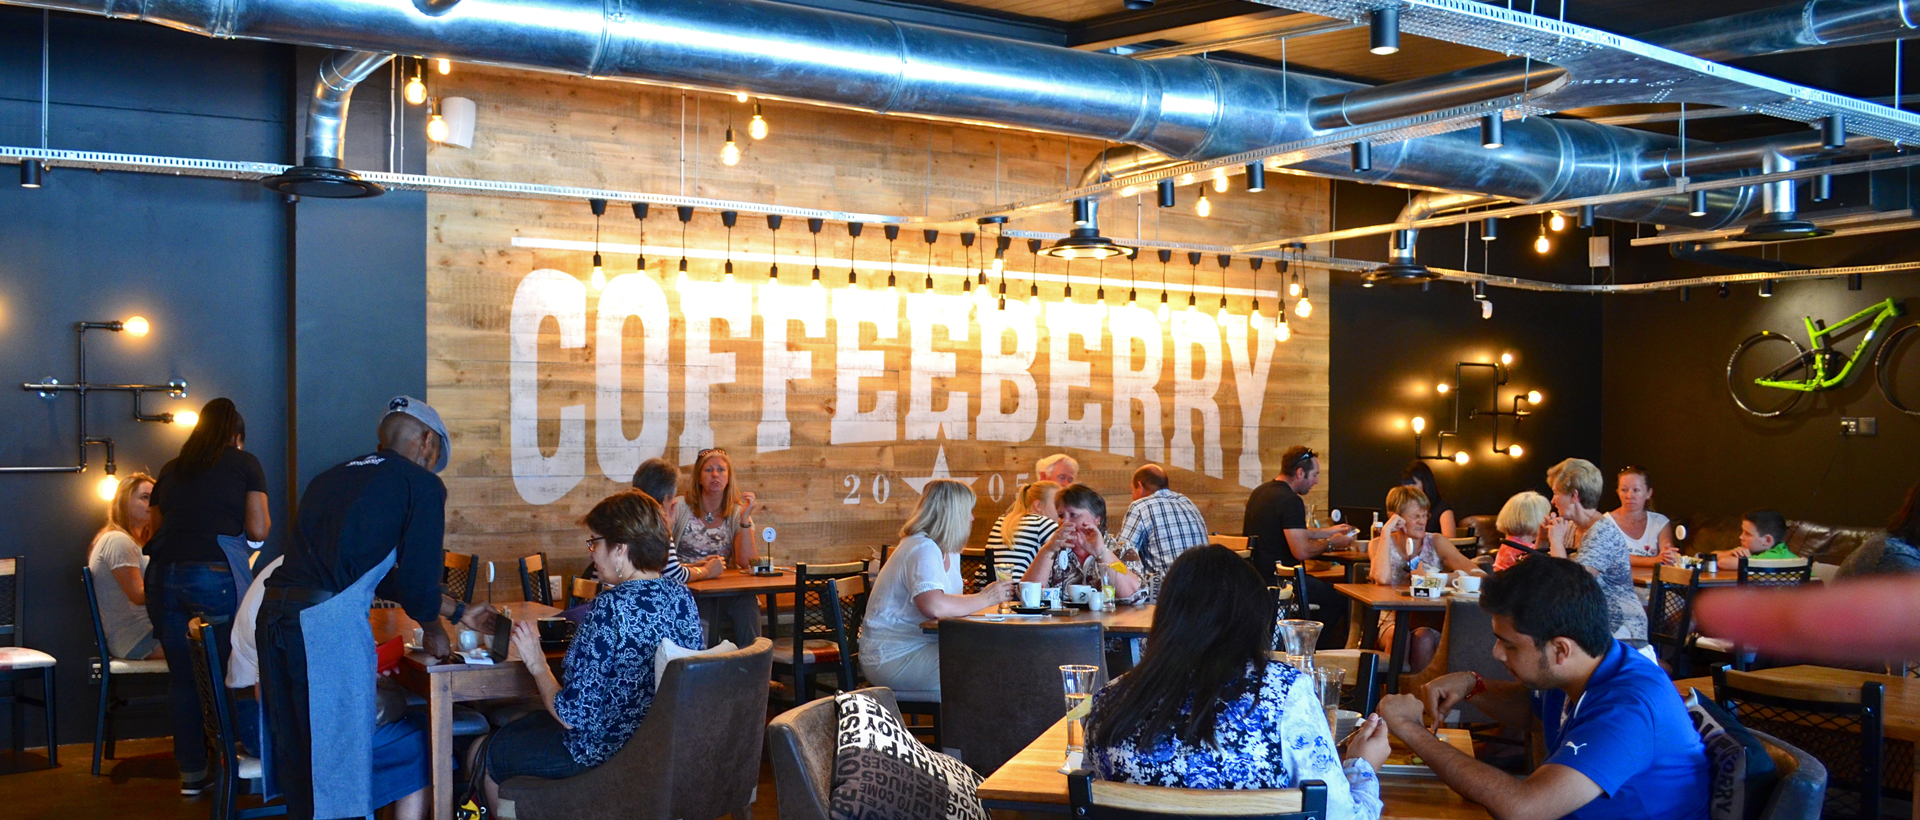 Cafe of the Week: Coffeeberry 2.0